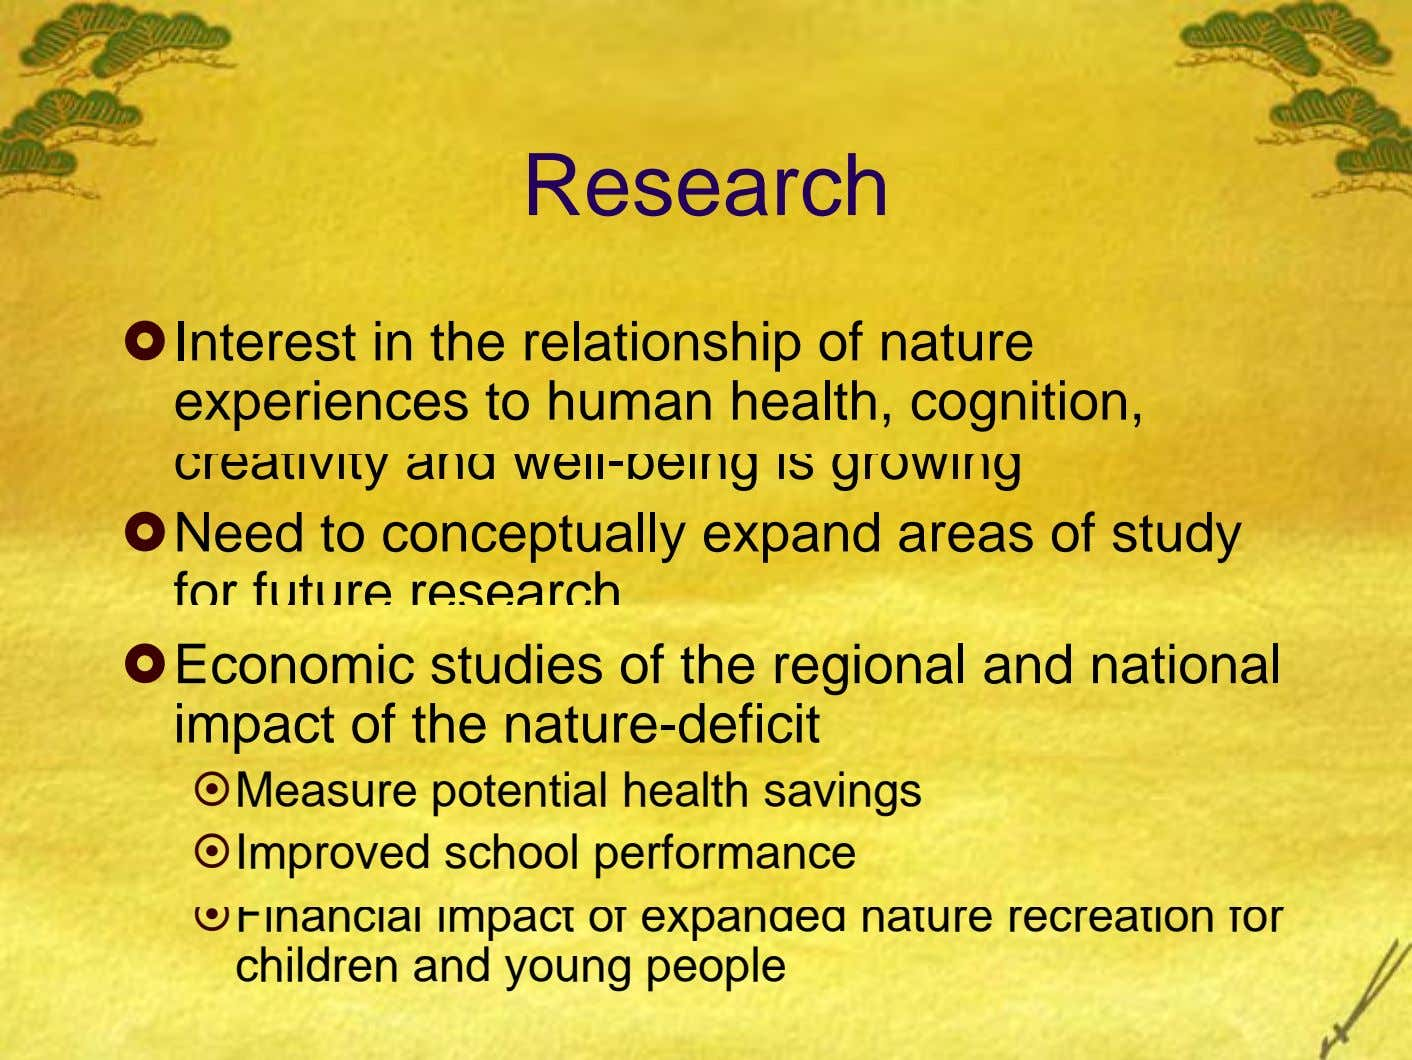 Research Interest in the relationship of nature experiences to human health, cognition, creativity and well-being is